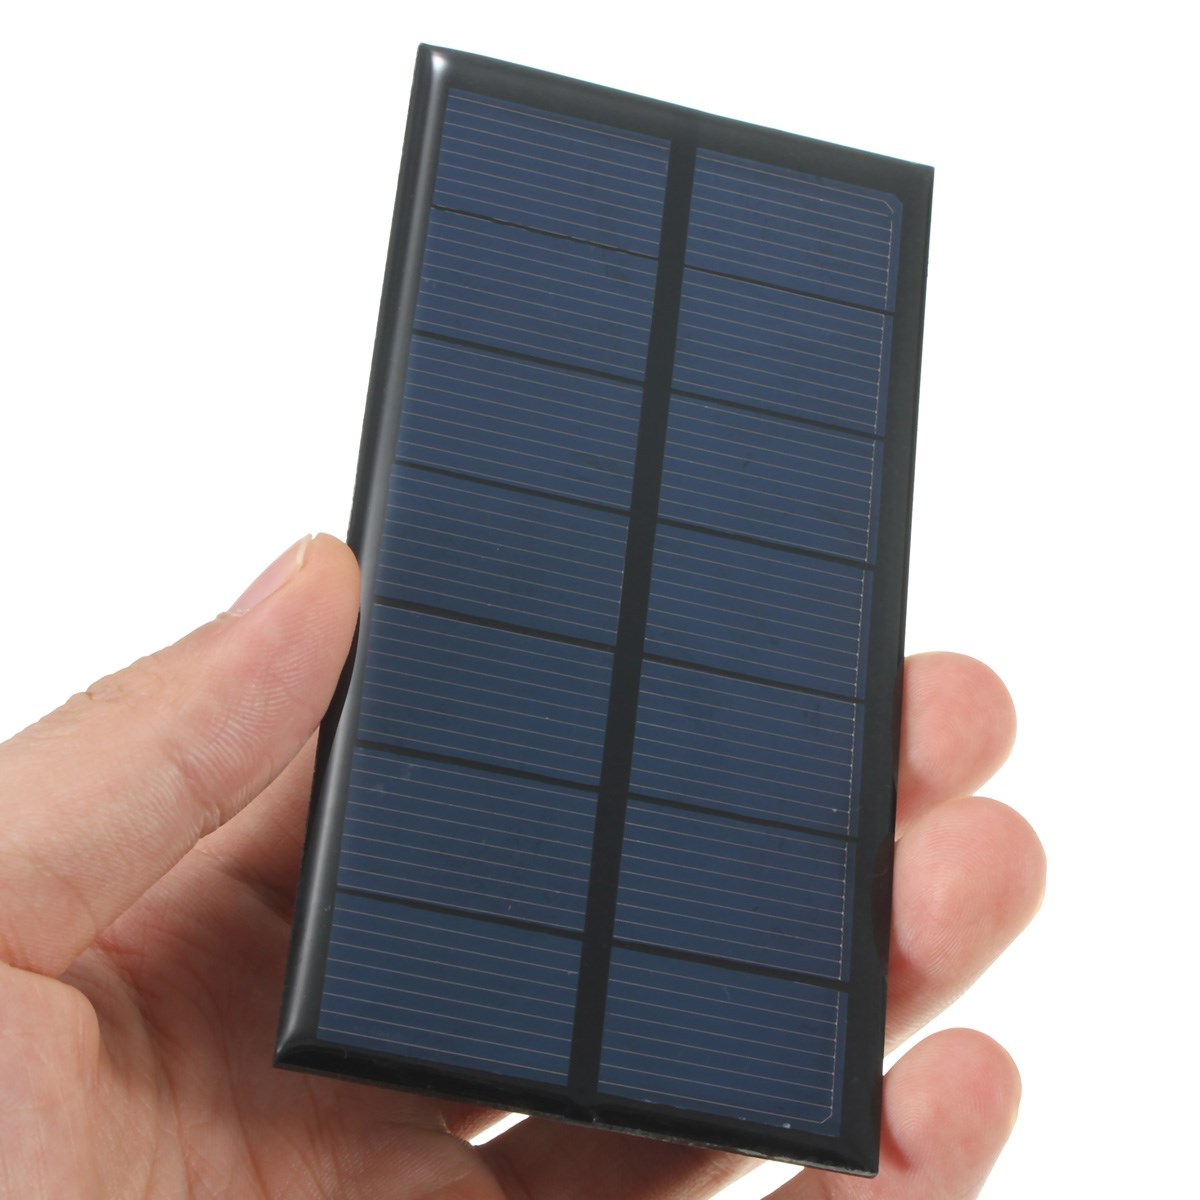 Hot Sale 3.5V 250mAh 0.8W Polycrystalline silicon Mini Solar Panel module Cell For Charger DC Battery DIY Kit 120x60mm(China (Mainland))